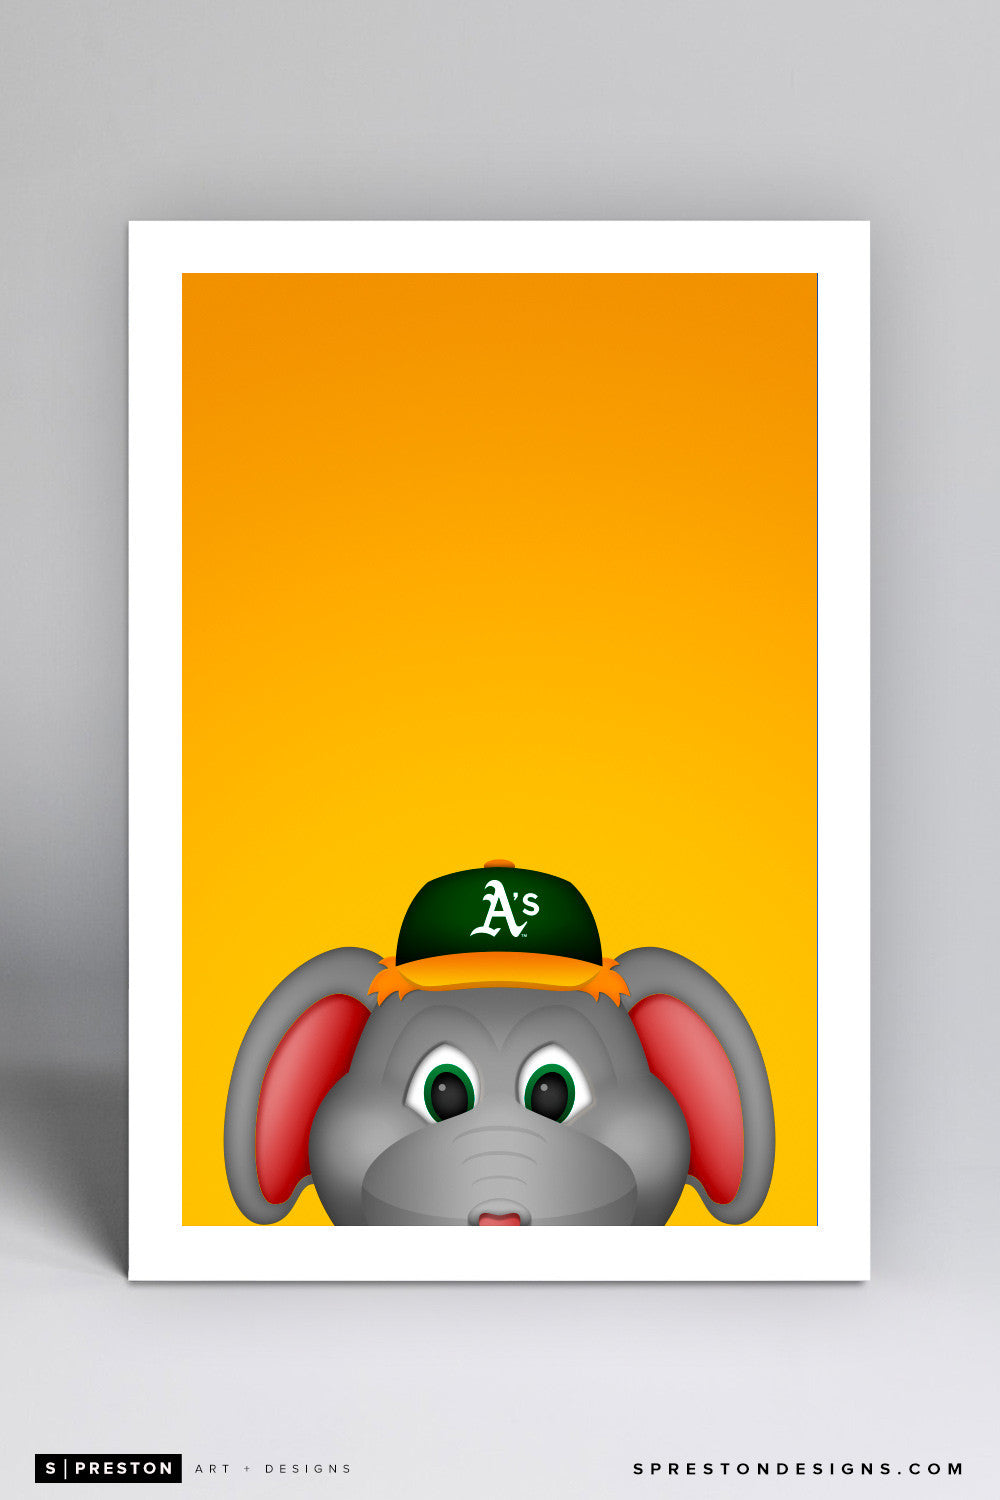 Minimalist Stomper Art Print - Oakland Athletics - S. Preston Art + Designs